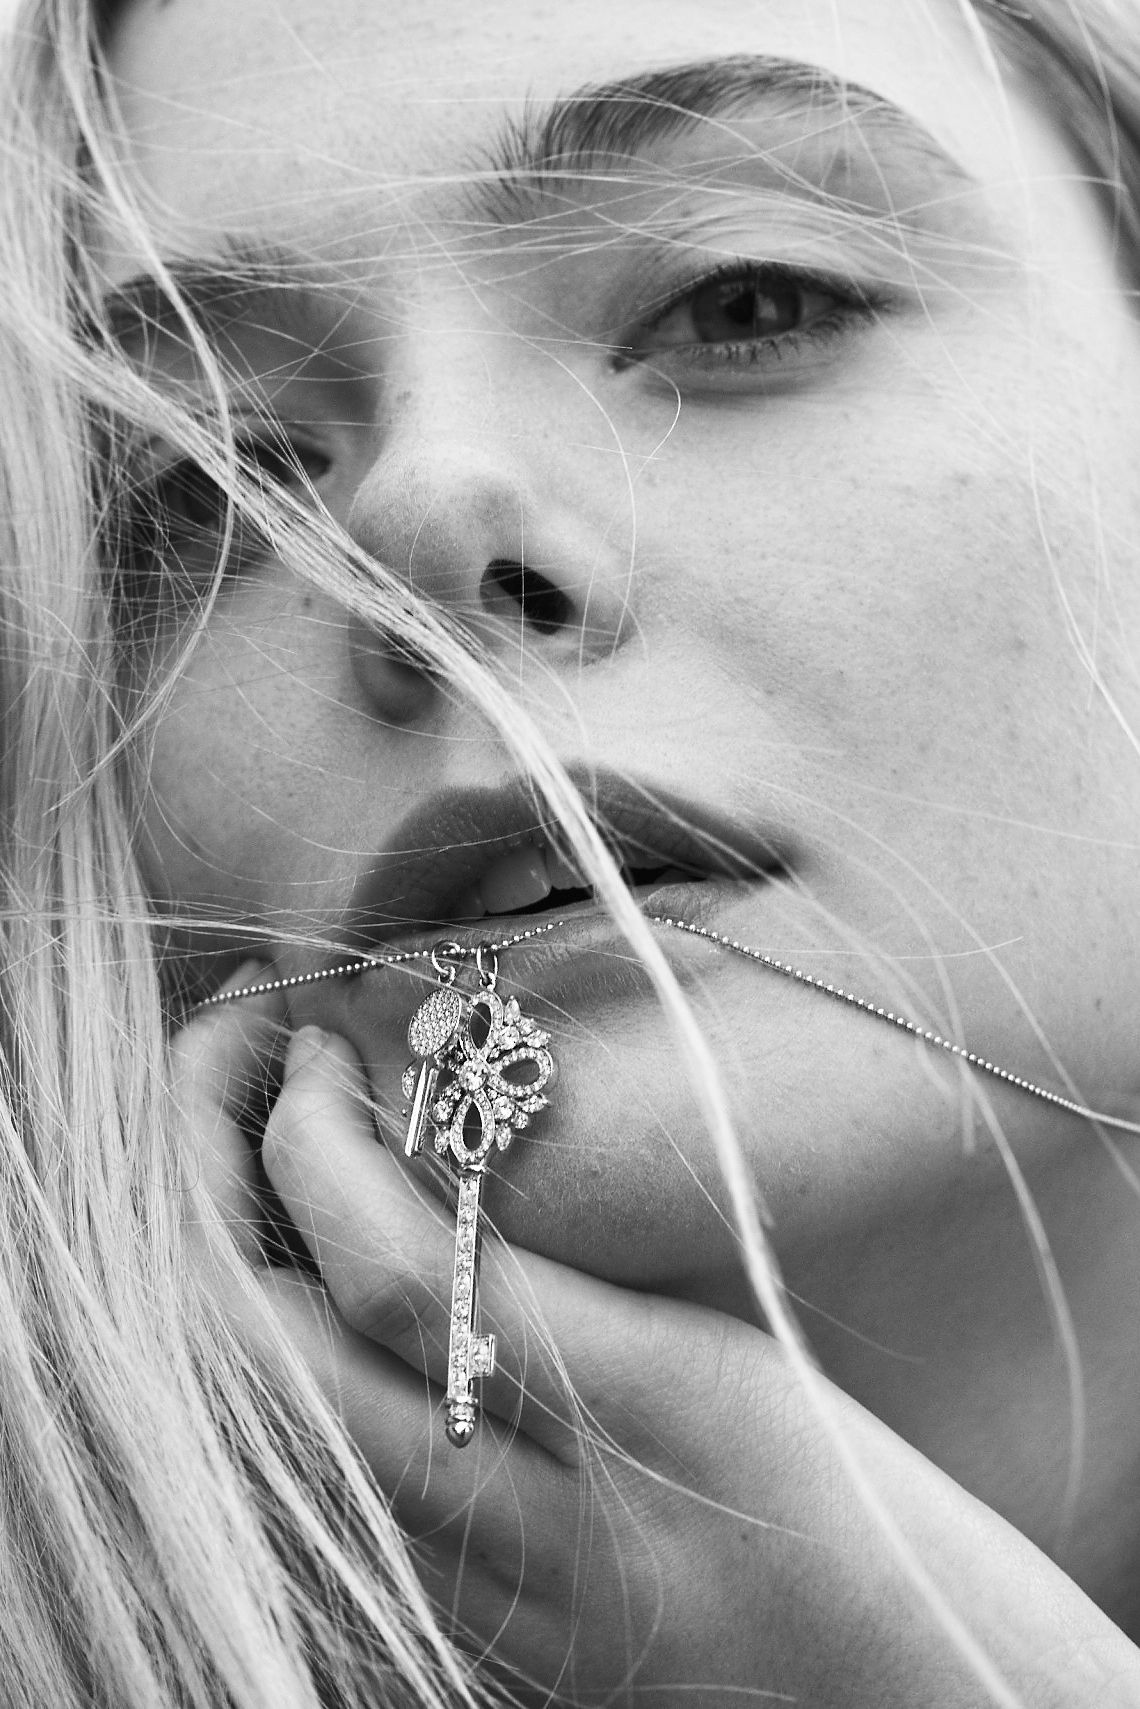 This is Tiffany issue 7 Elle Fanning photographed by Cass Bird